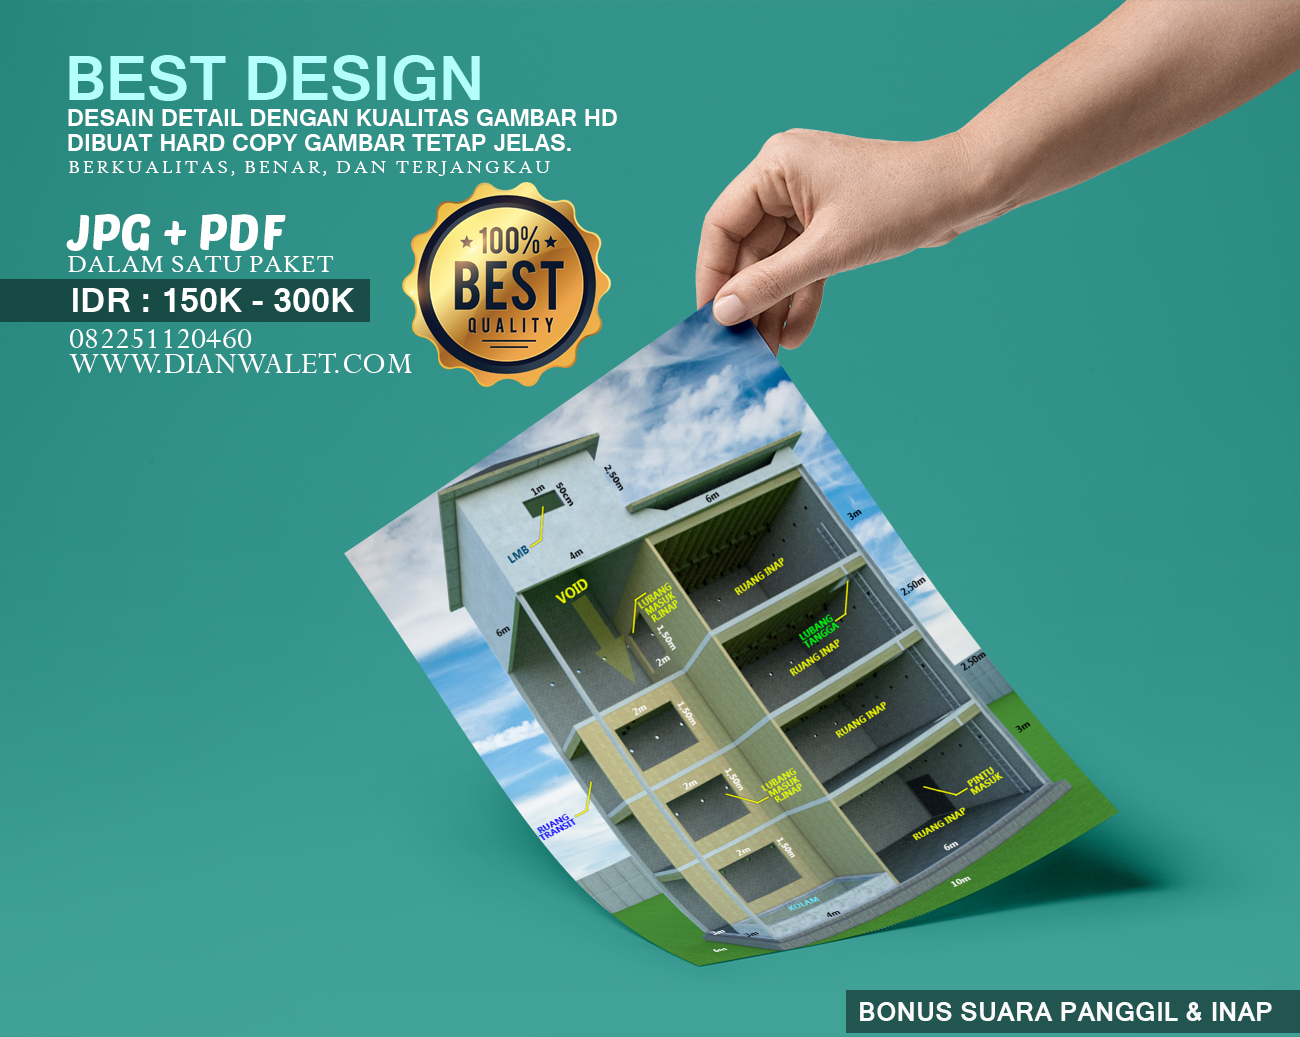 Gambar Rumah Up Swiftlet House Design Pdf Roilifonhicumspres Tk